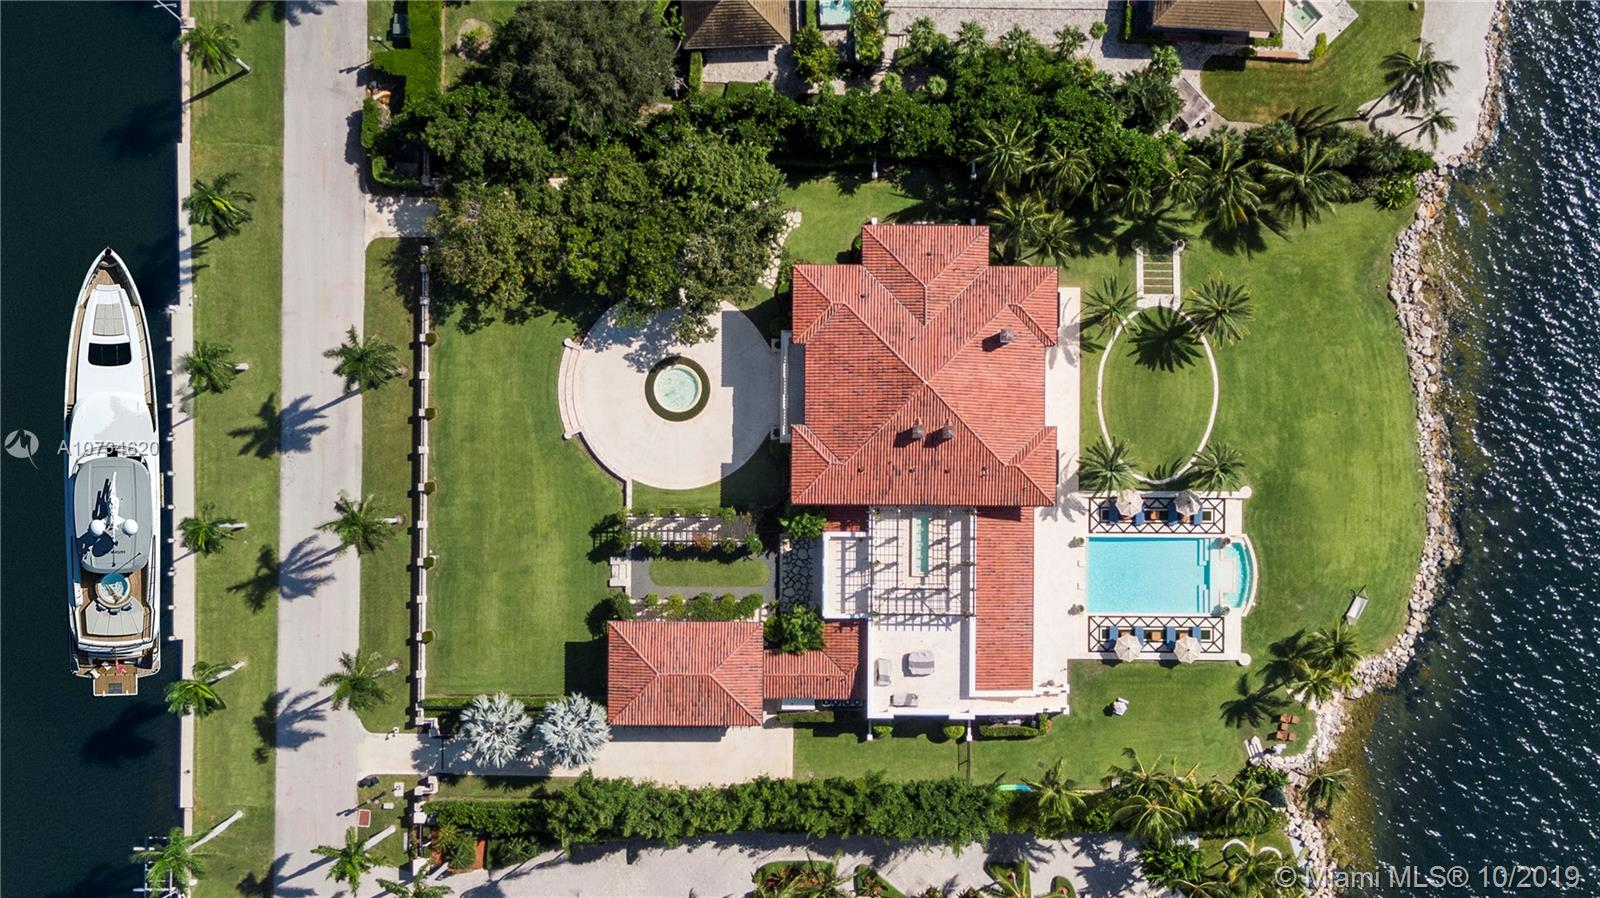 Homes for Sale | Search All Miami Houses For Sale on